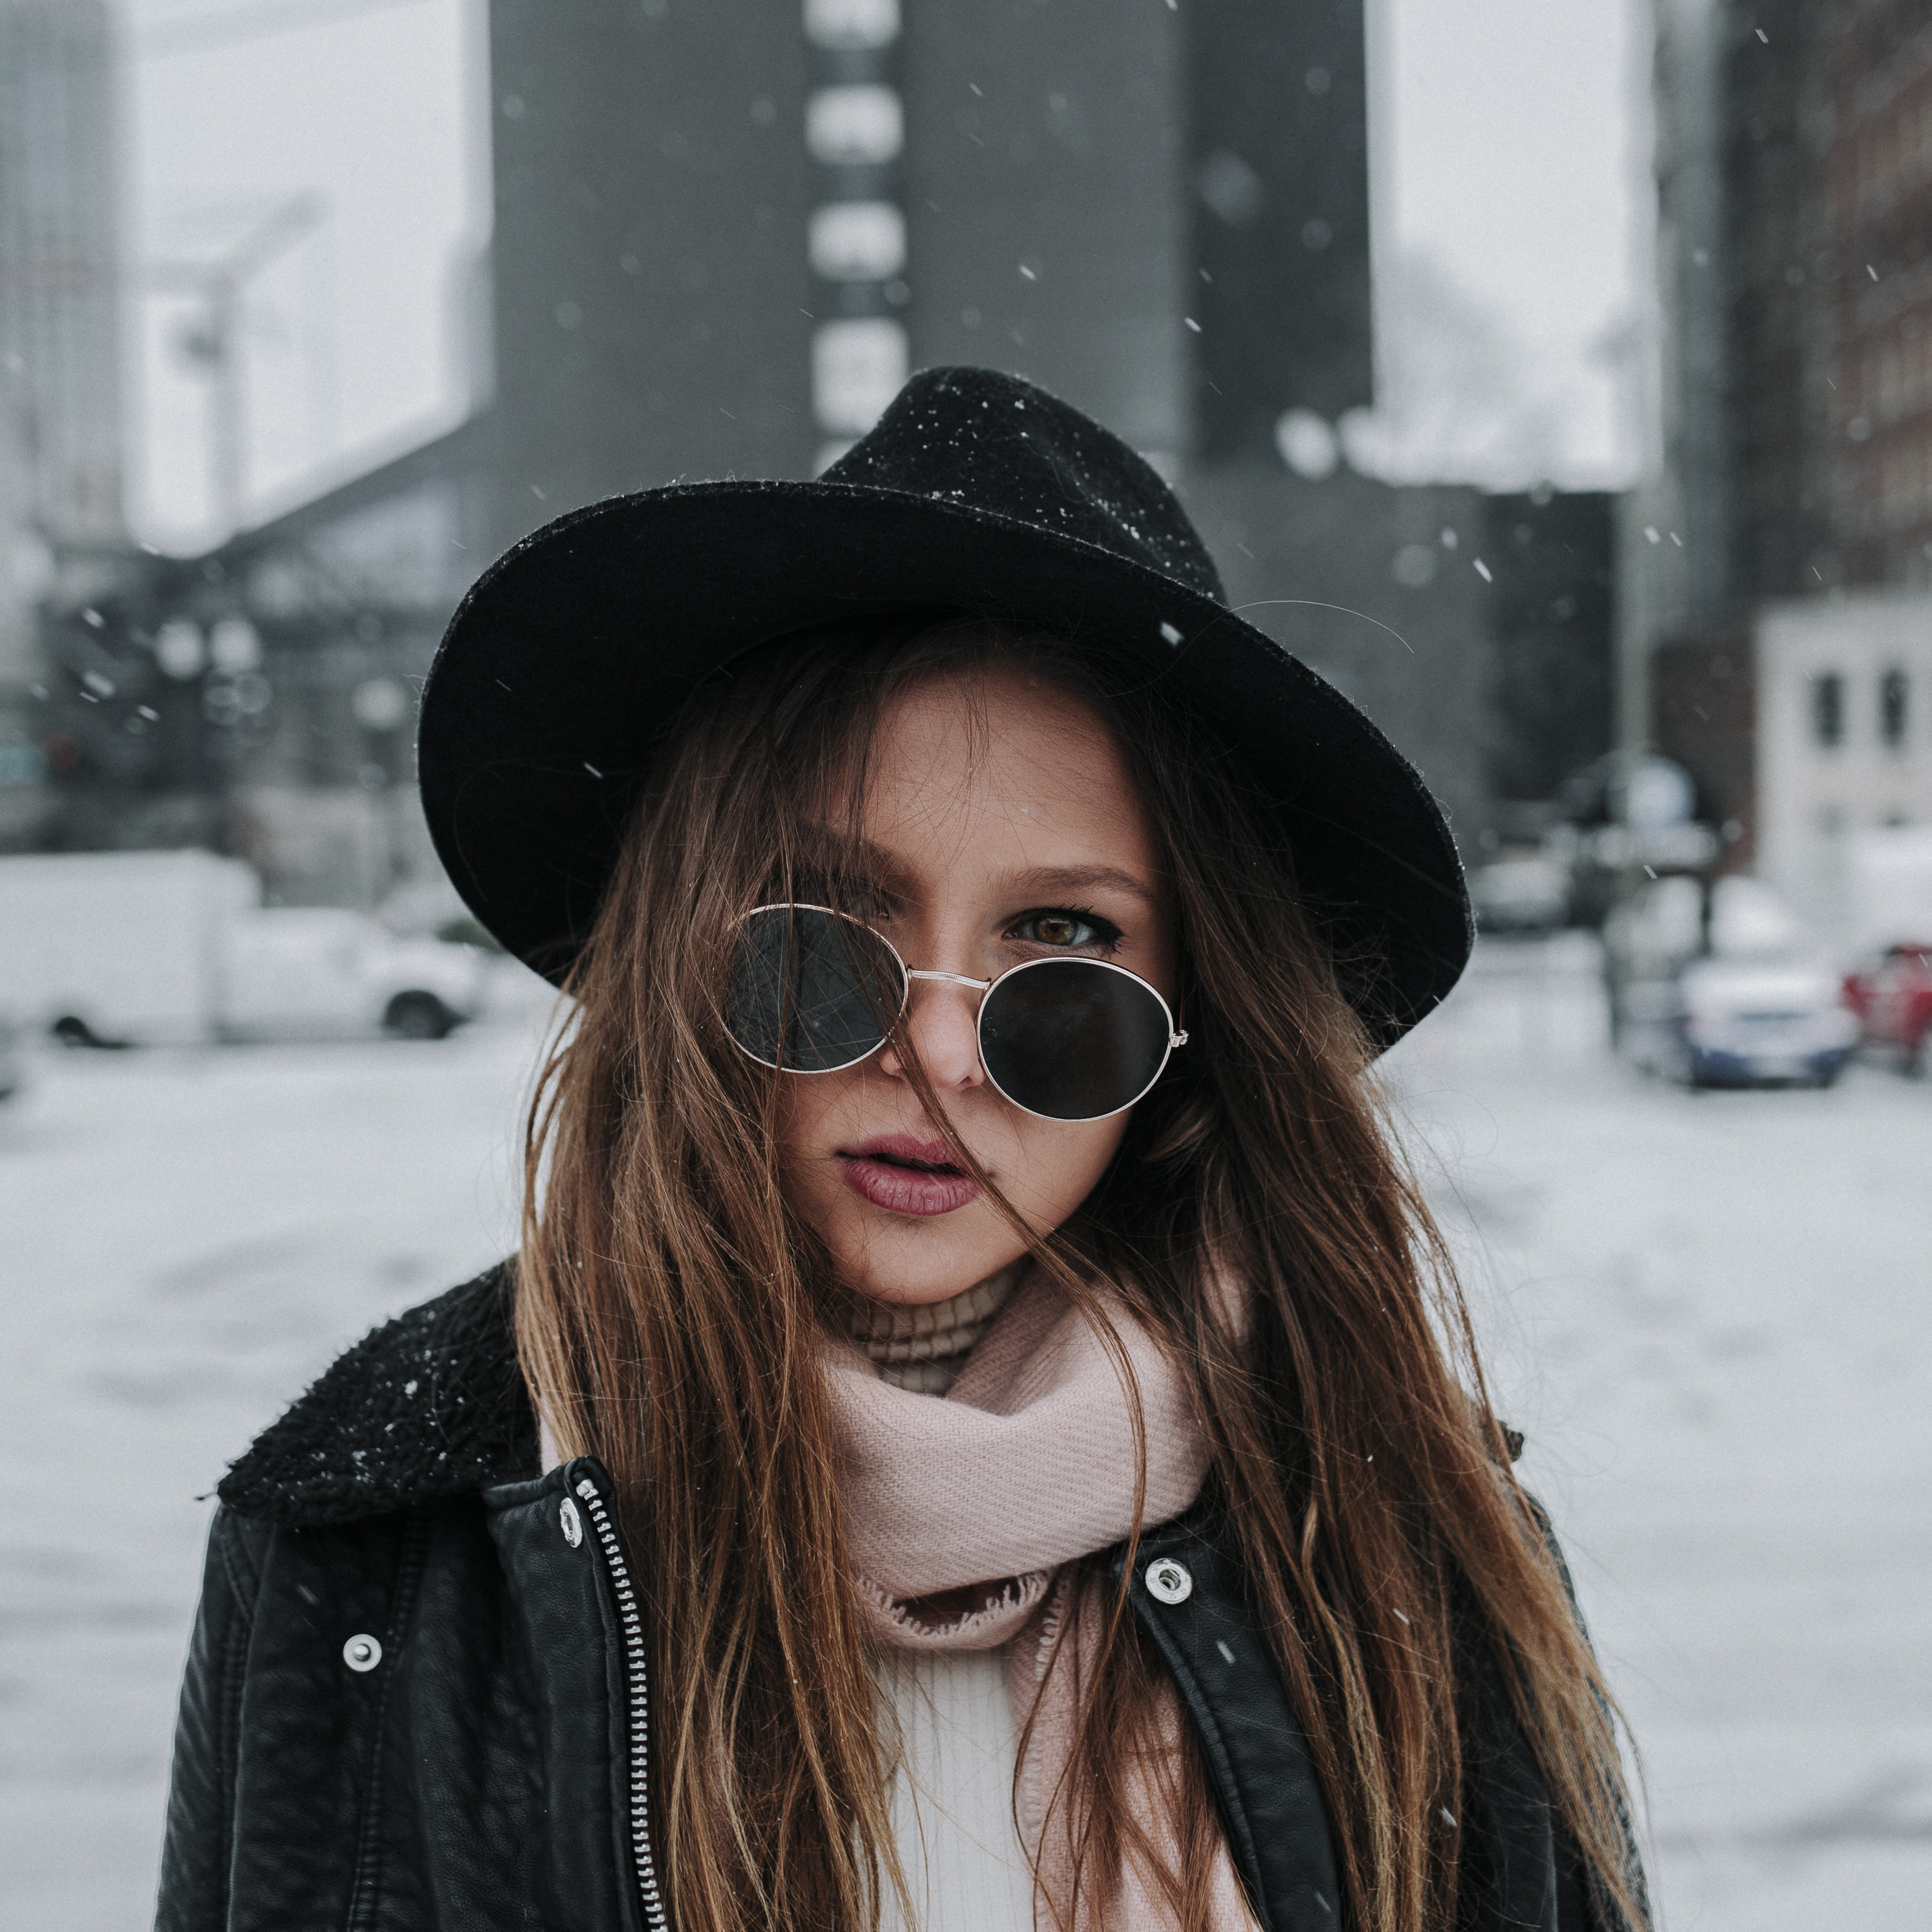 A brunette woman wearing a hat and sunglasses standing in the snow in Nashville